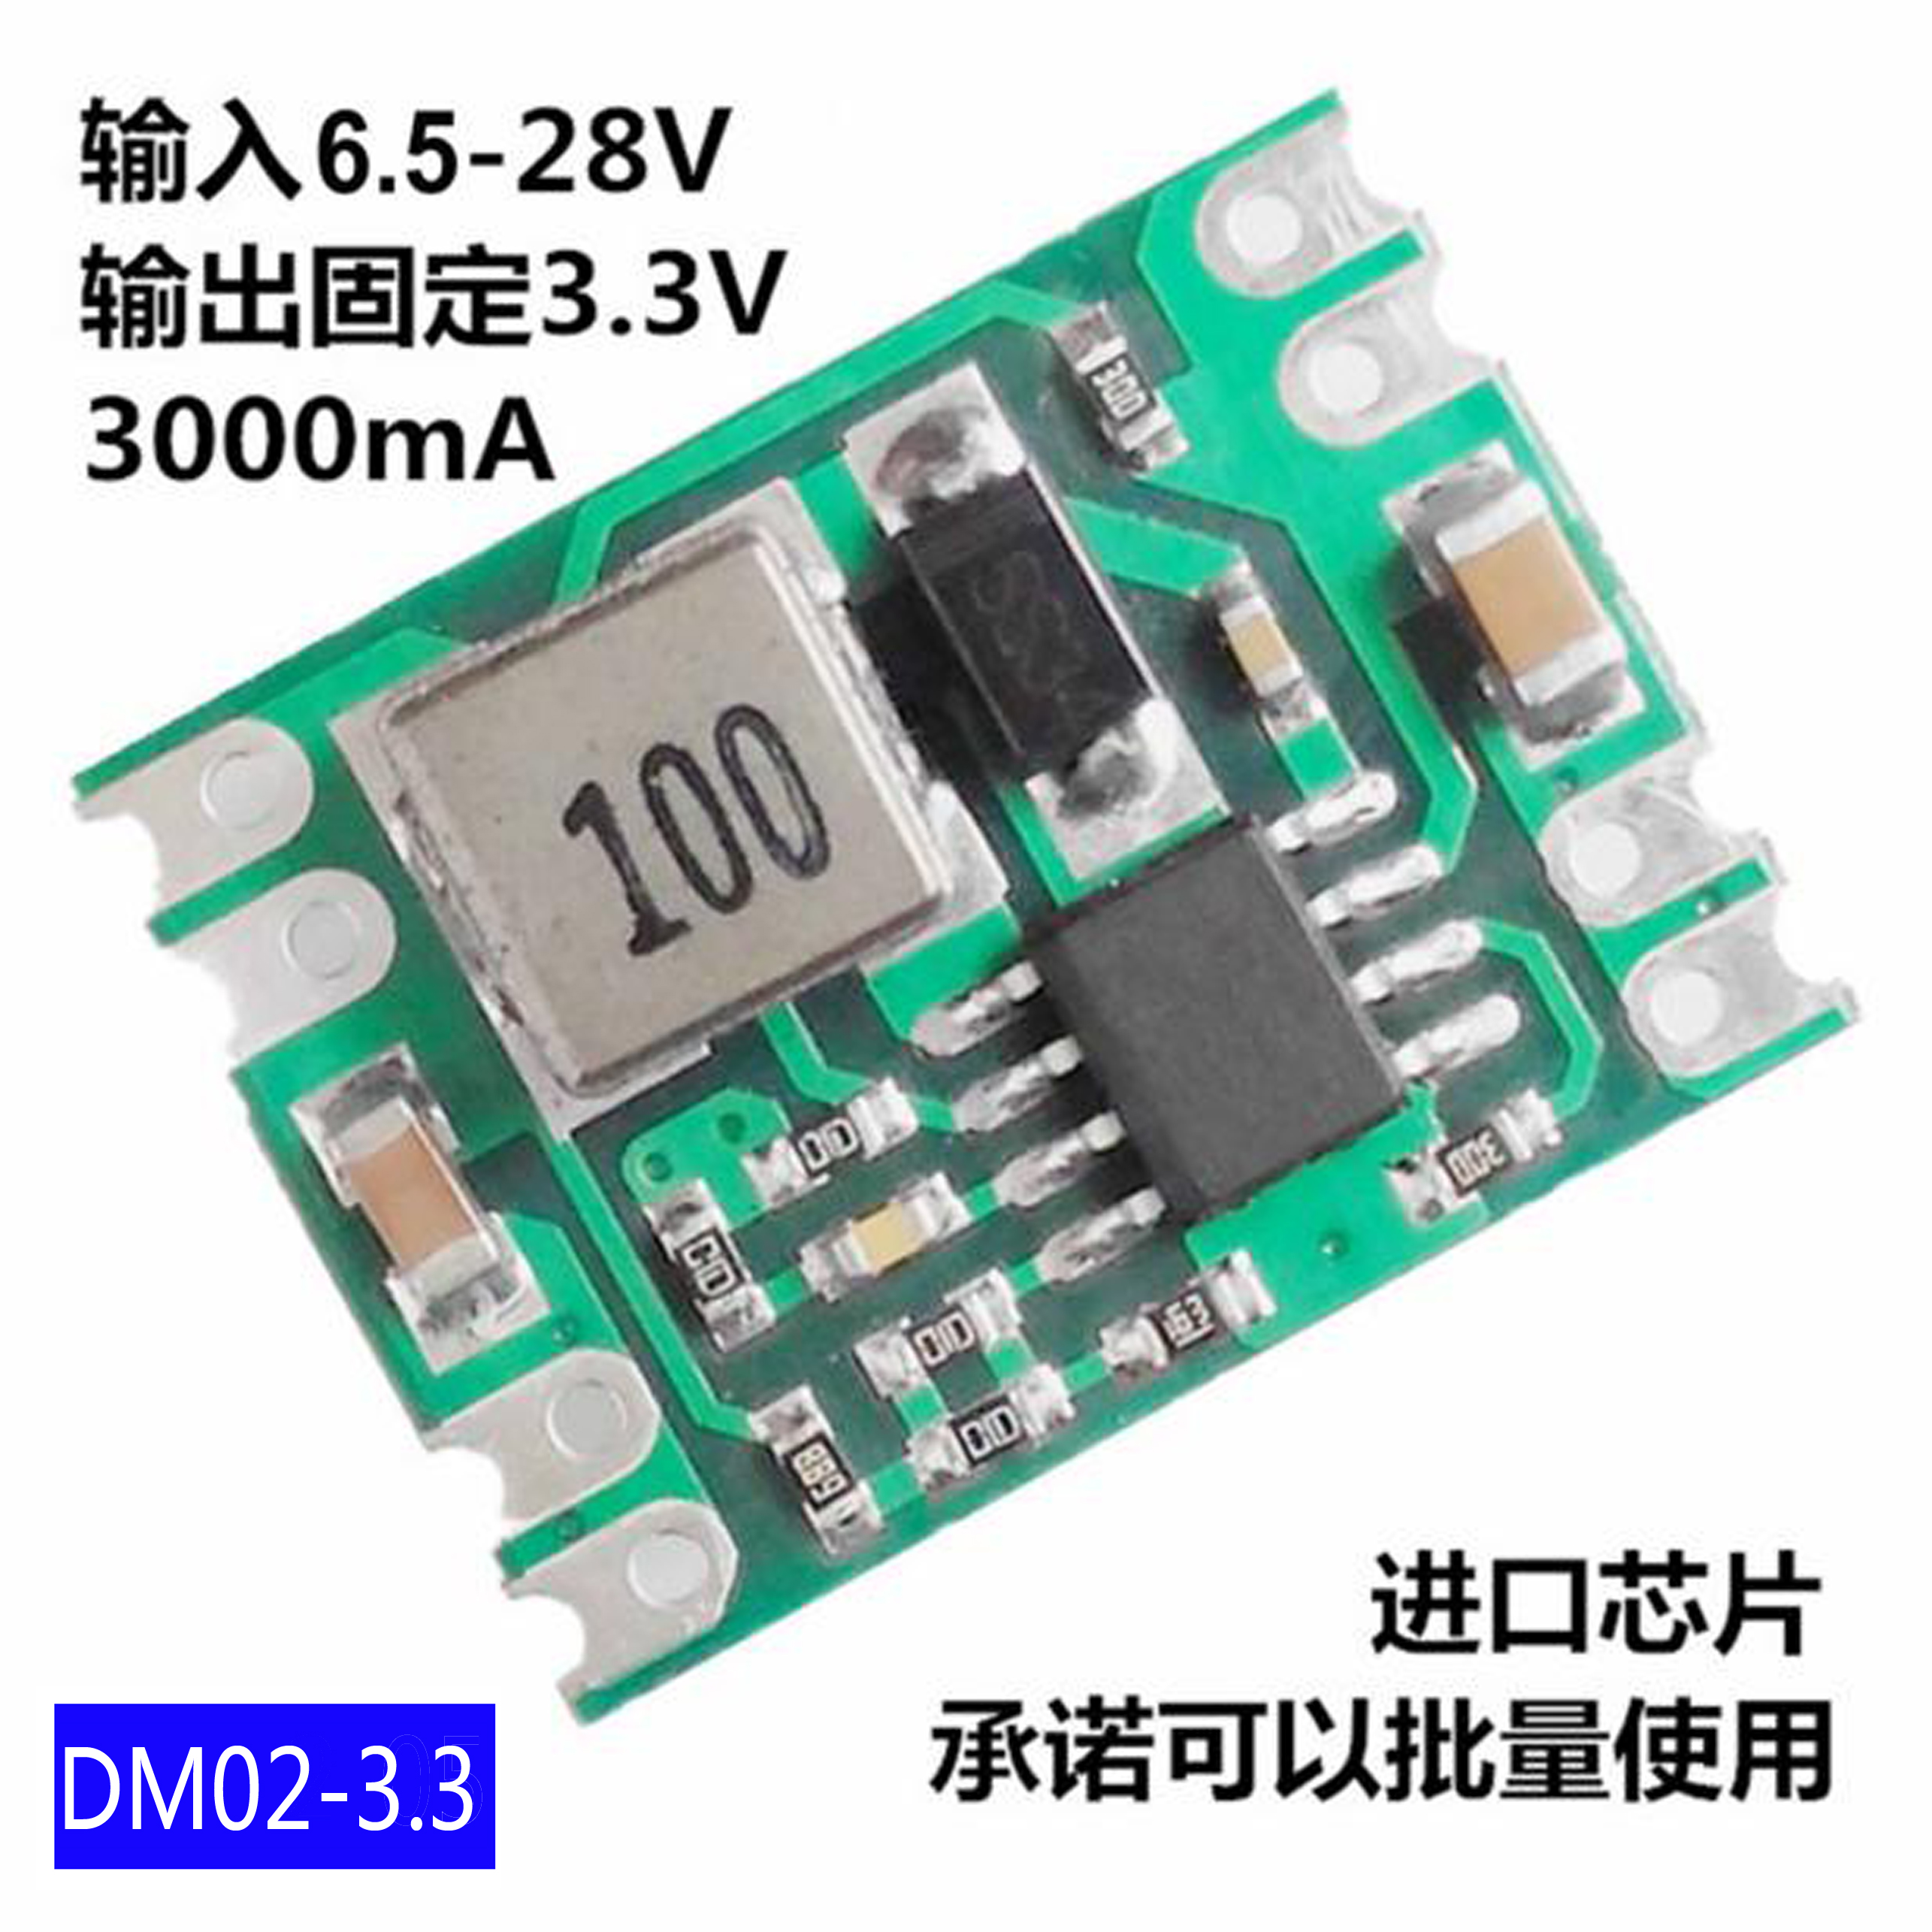 DC-DC Buck Module 3.3V Voltage Regulator Module 12-24V to 3.3V Buck Module, /6V to 3.3V цена и фото